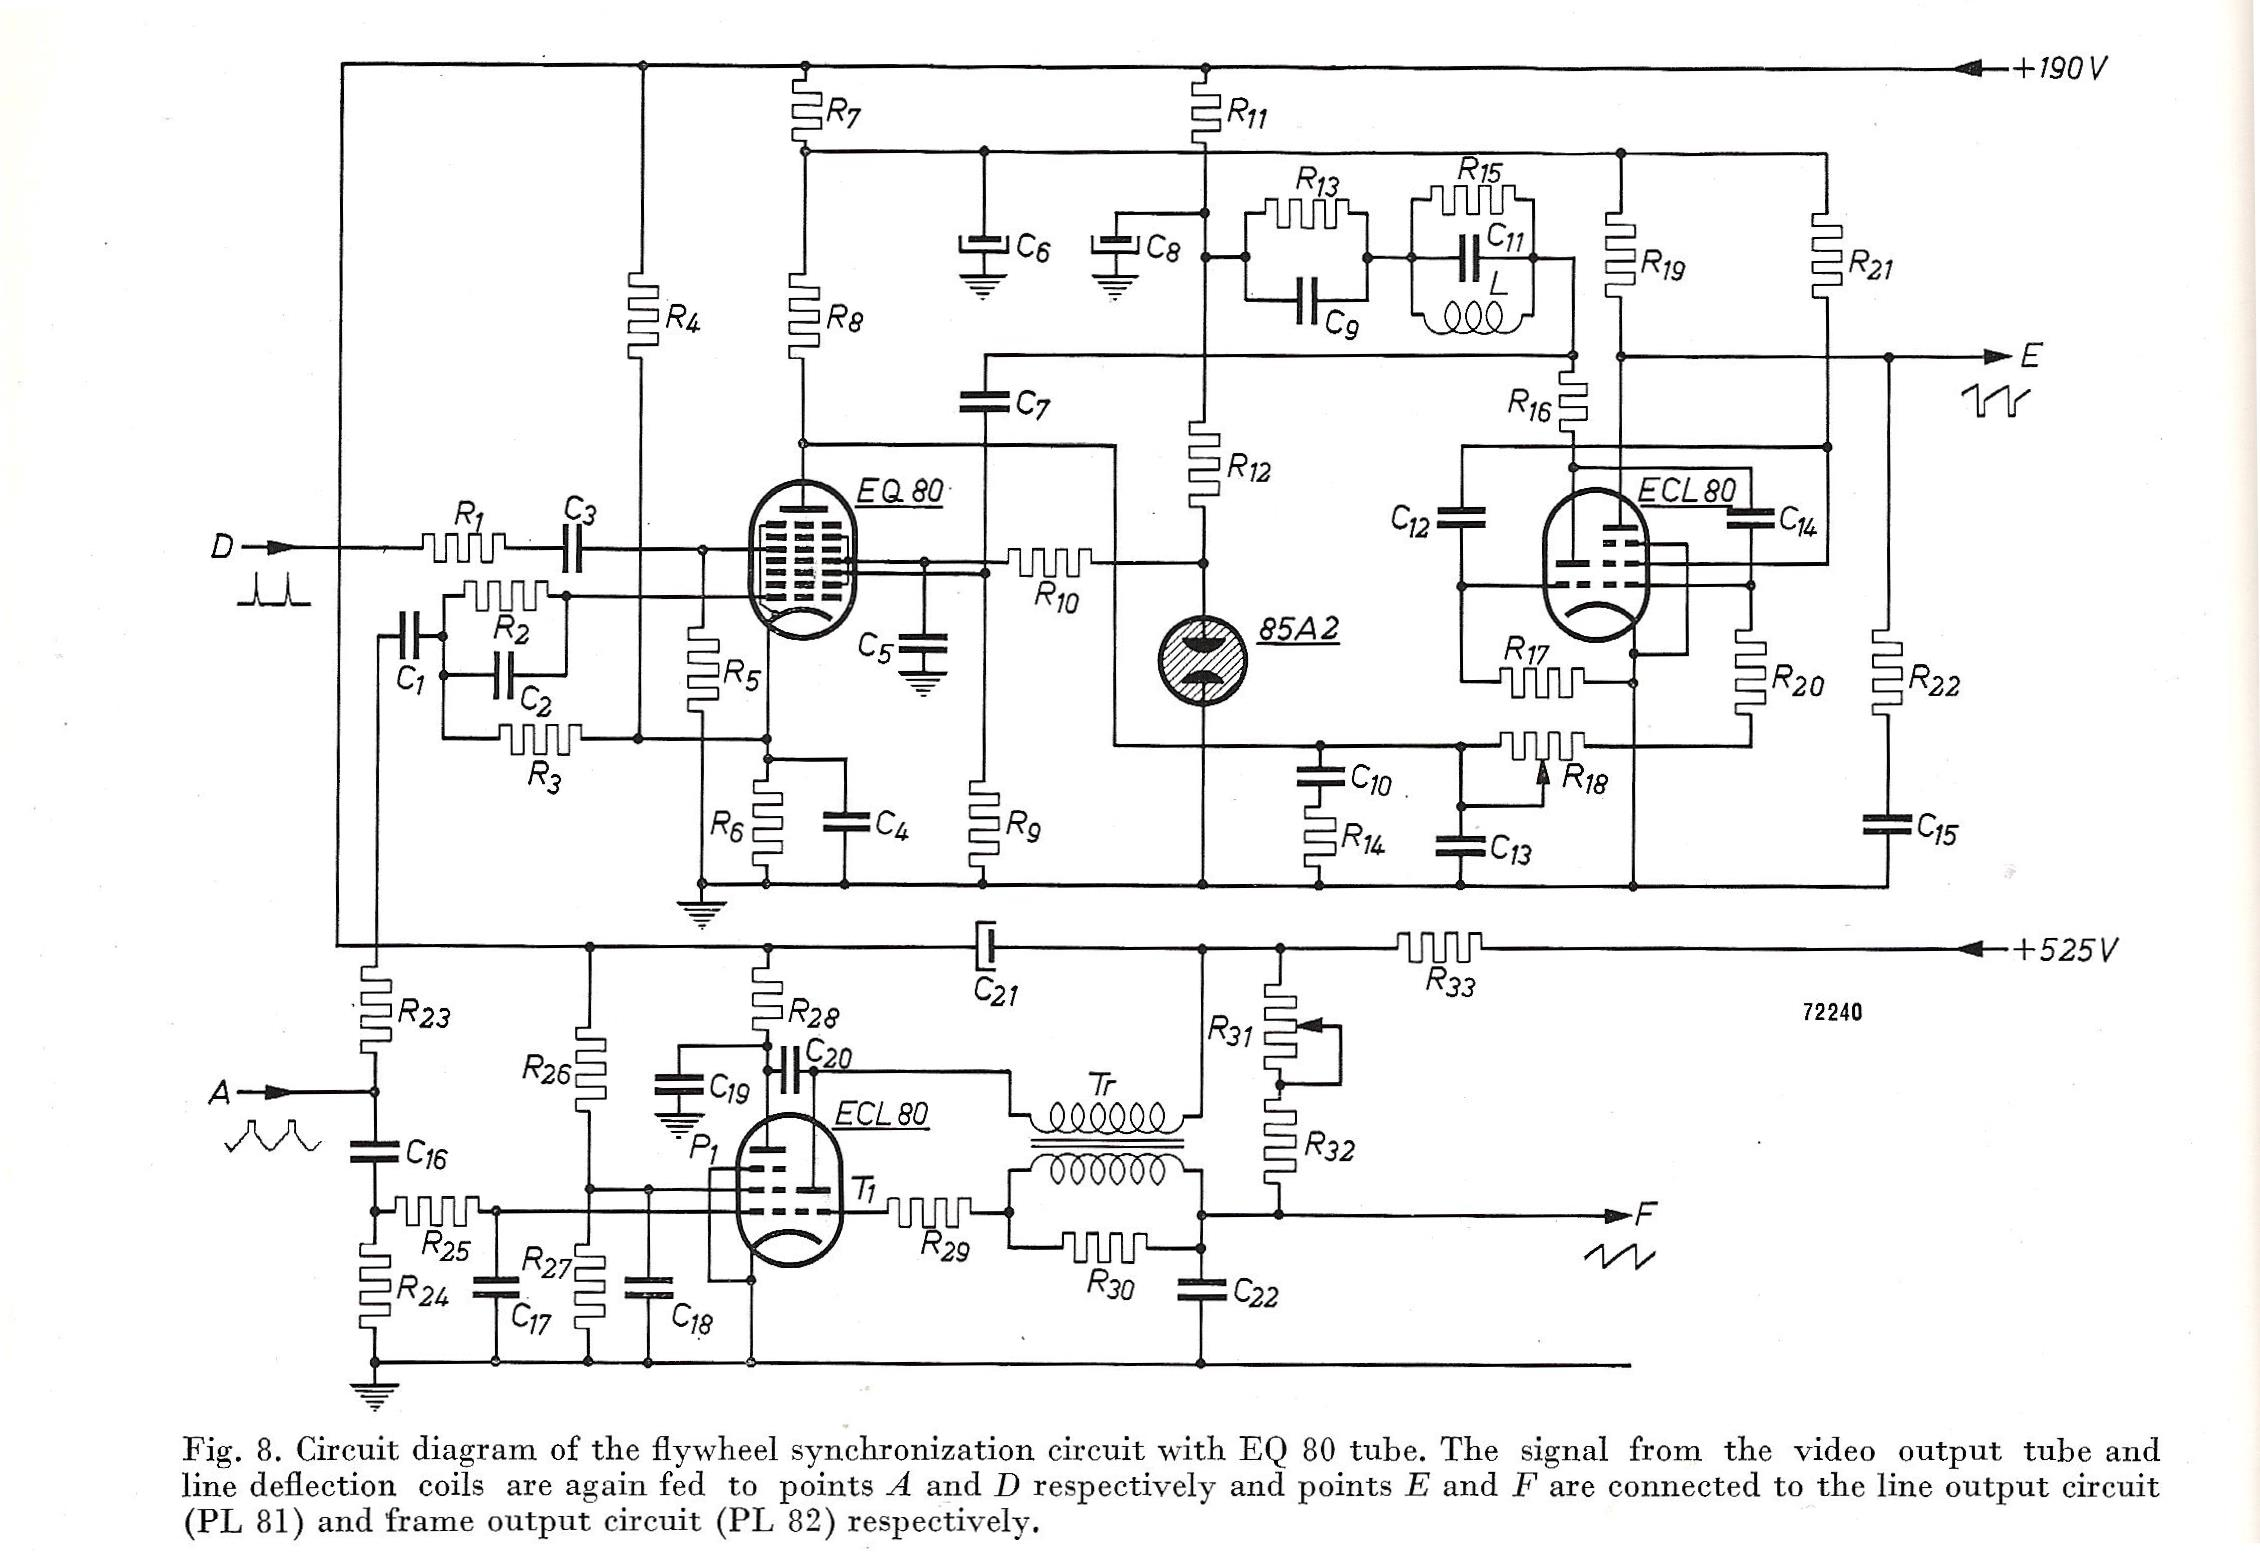 EAB_1952_EQ80_Flywheel_synchronization_3 horstmann centaurplus c17 wiring diagram schematic circuit diagram horstmann centaurplus c17 wiring diagram at webbmarketing.co